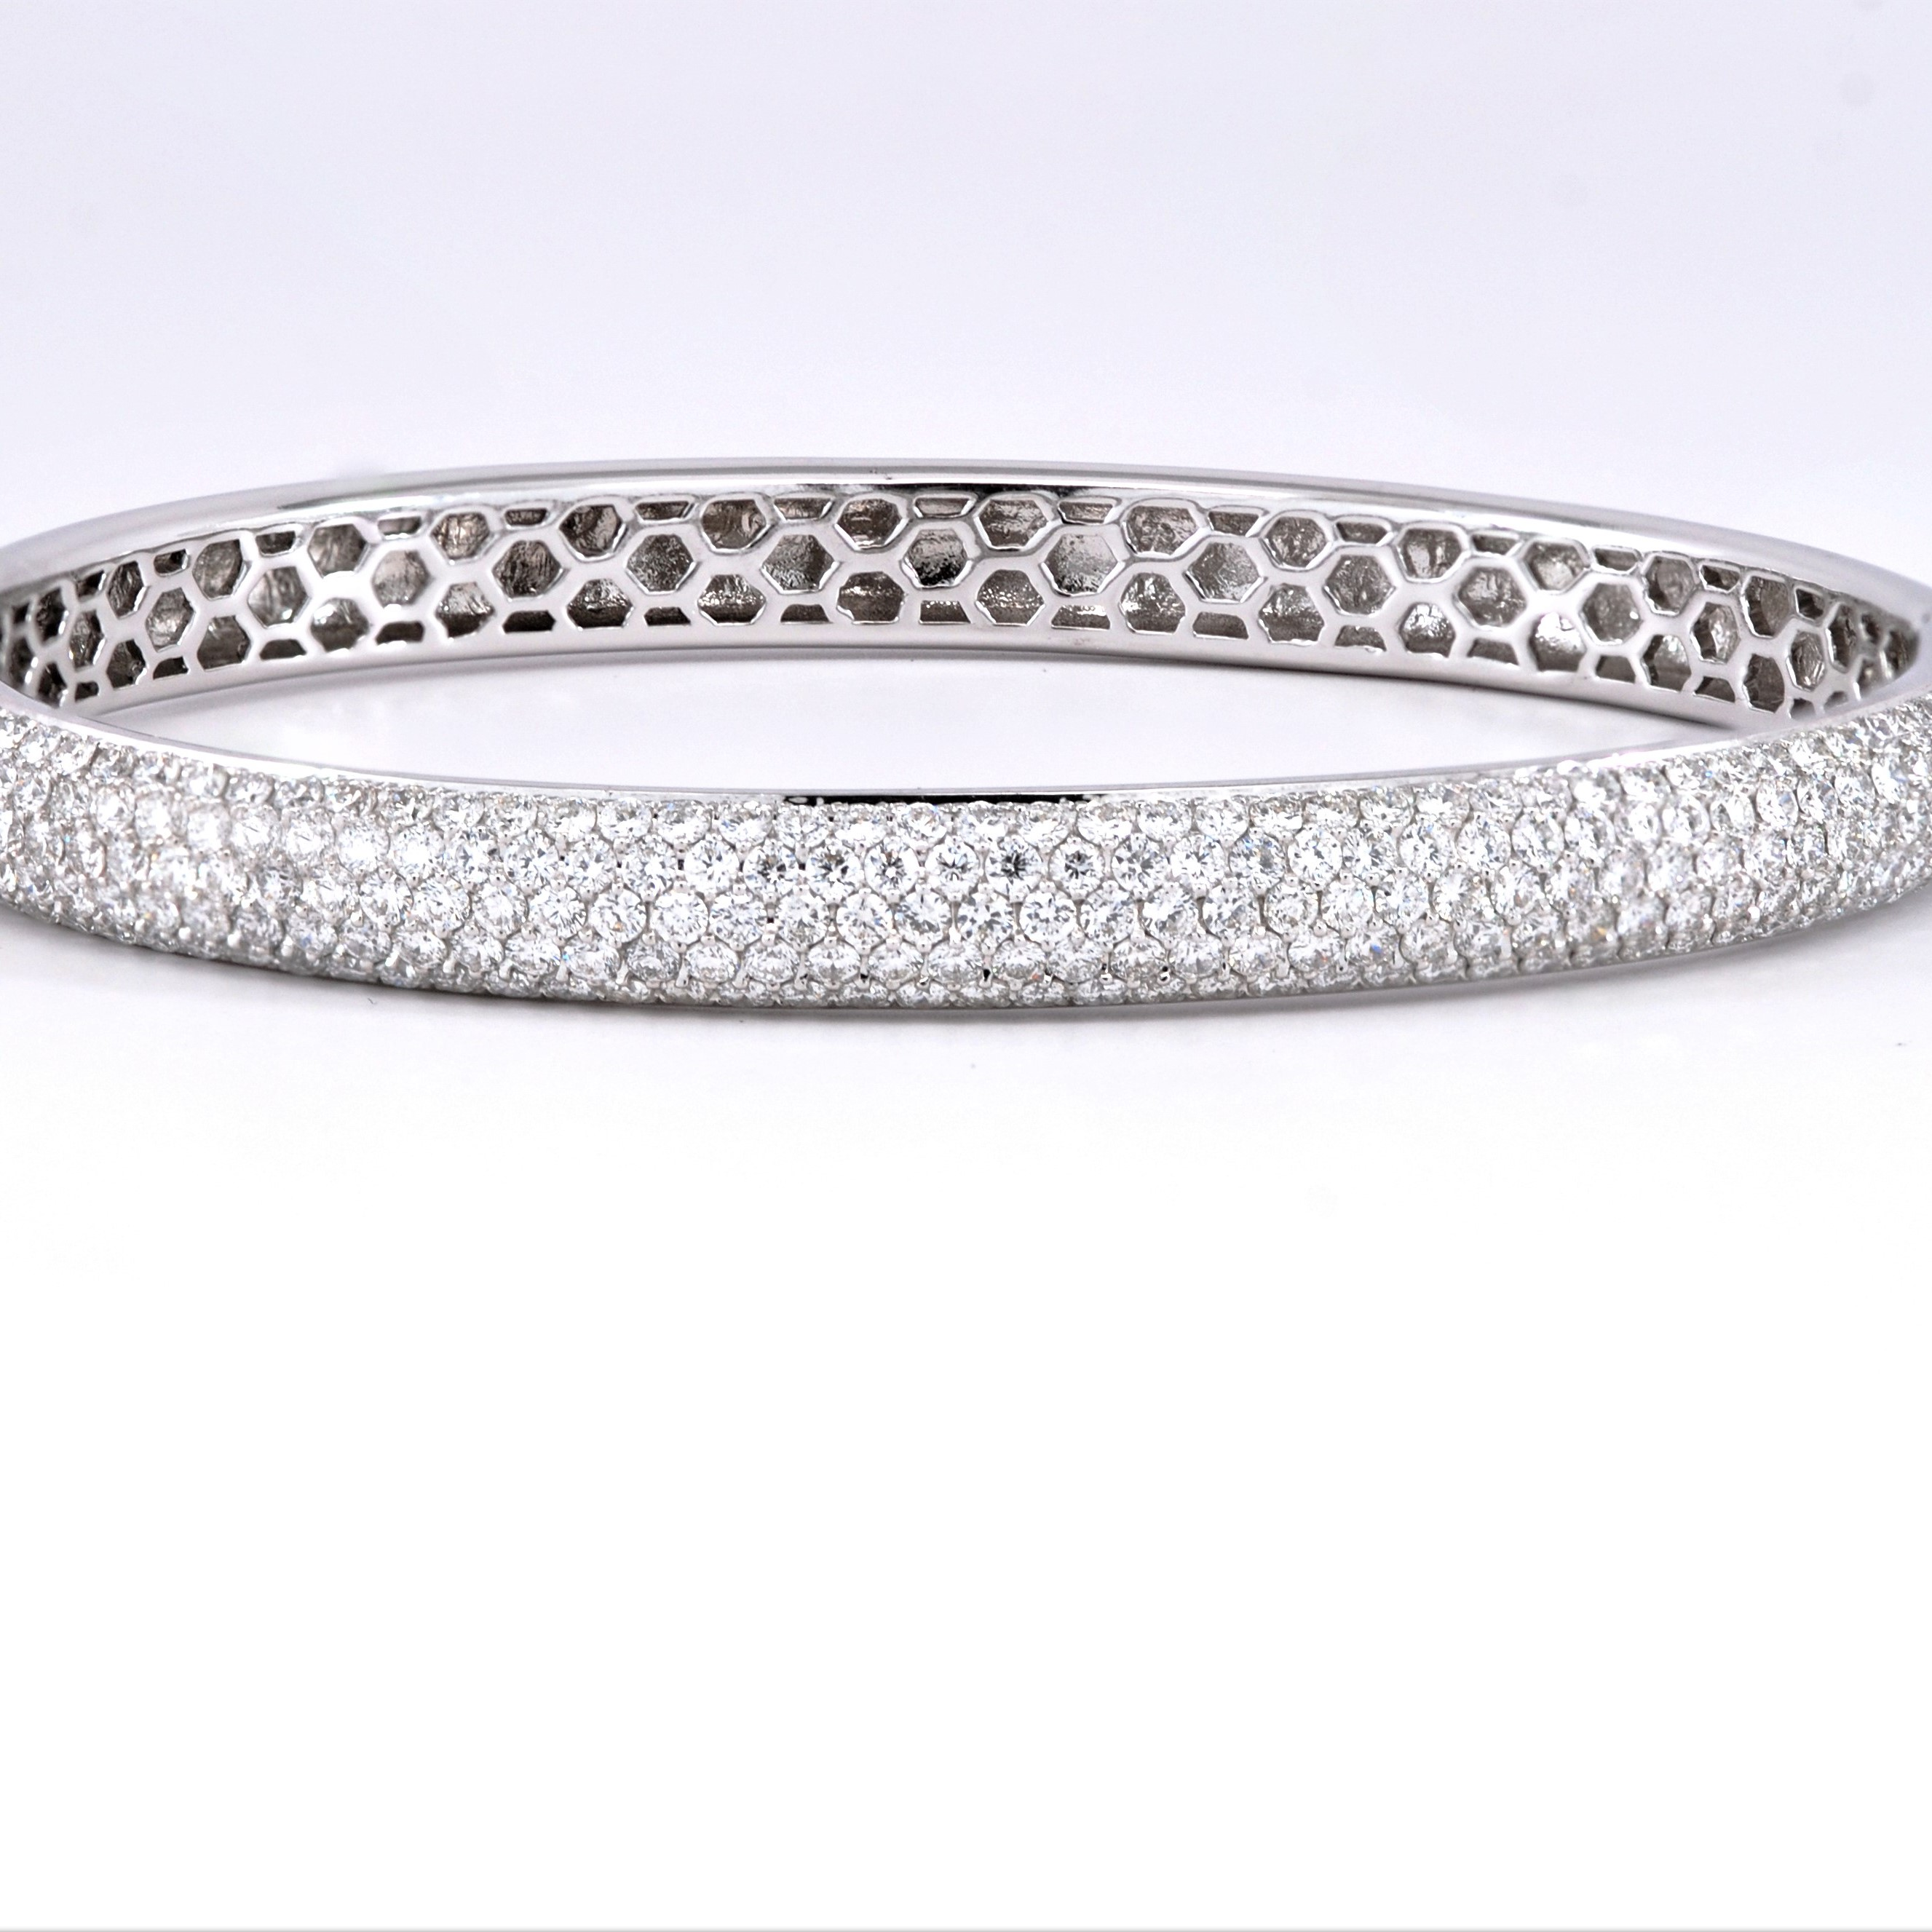 gold mb bangles altman jewelry bracelet products white bangle diamond